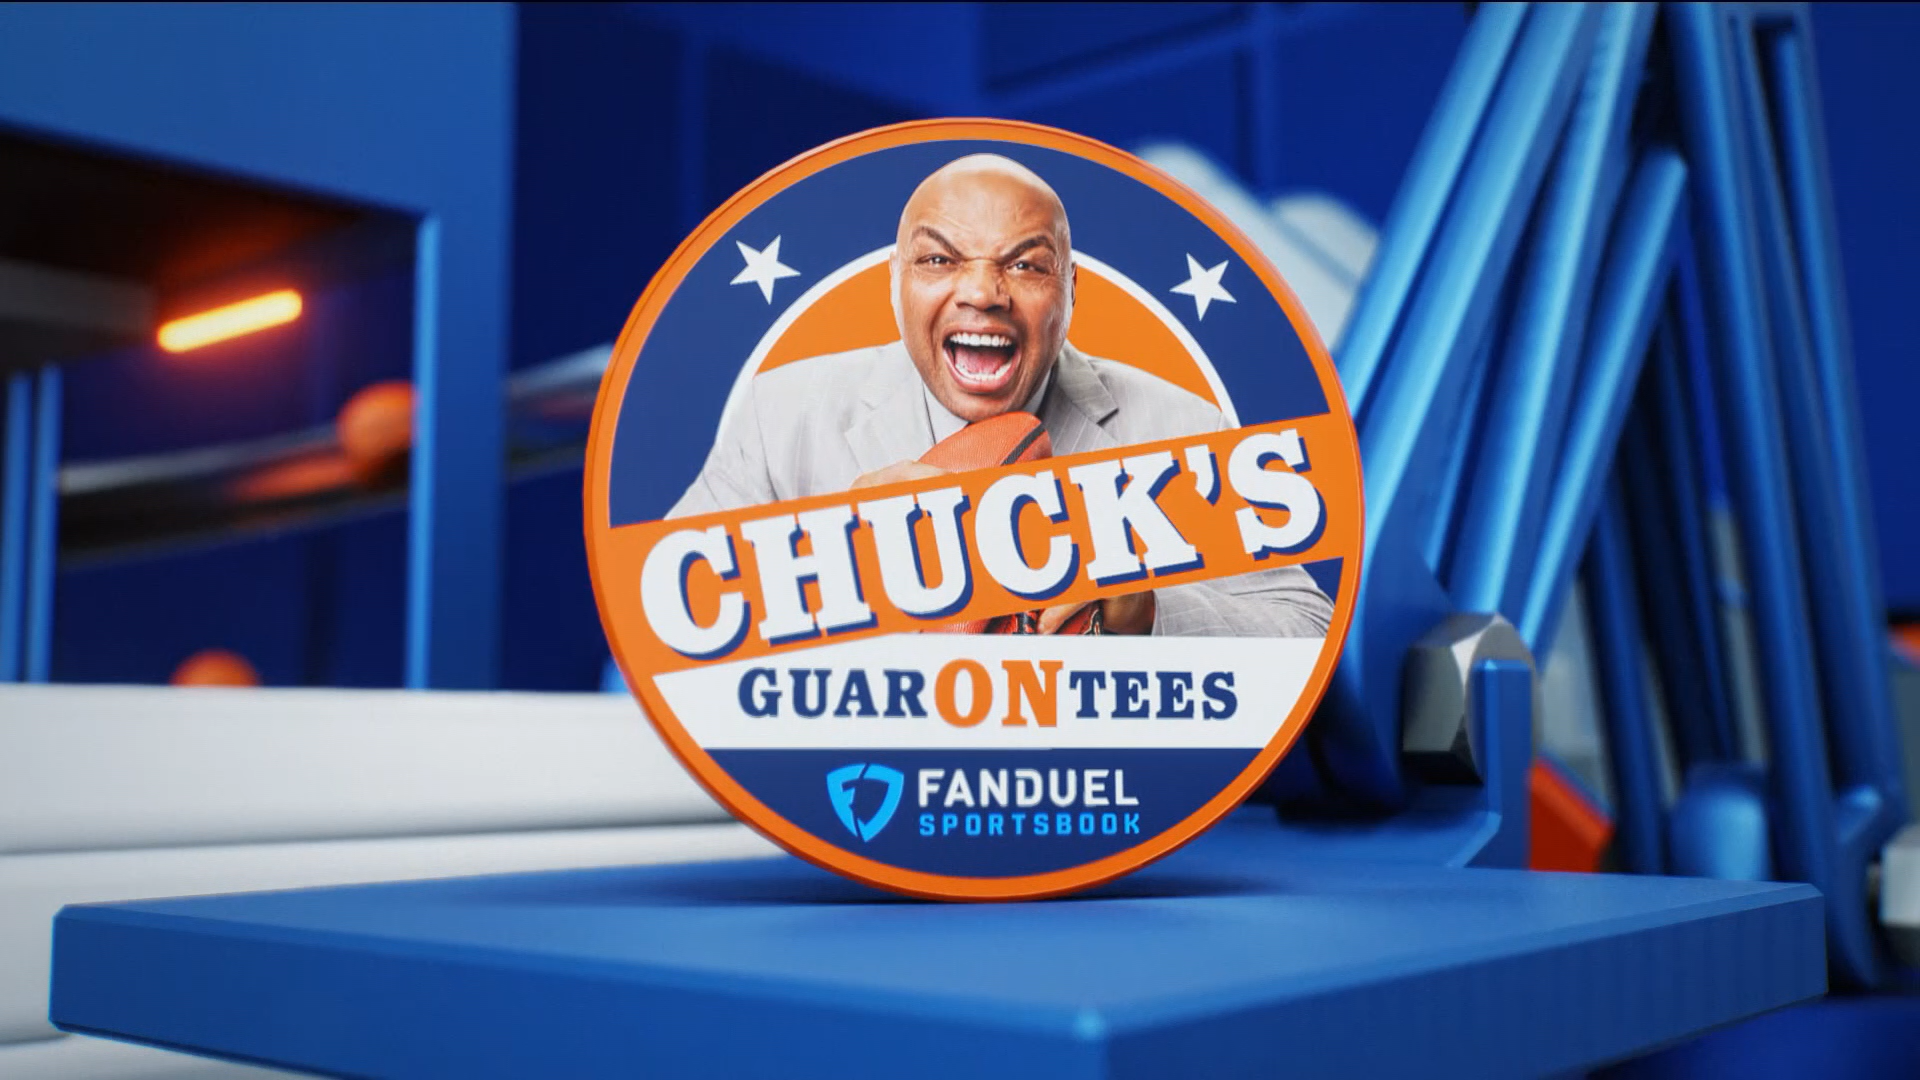 Chuck's GuarONtees: All-Star predictions